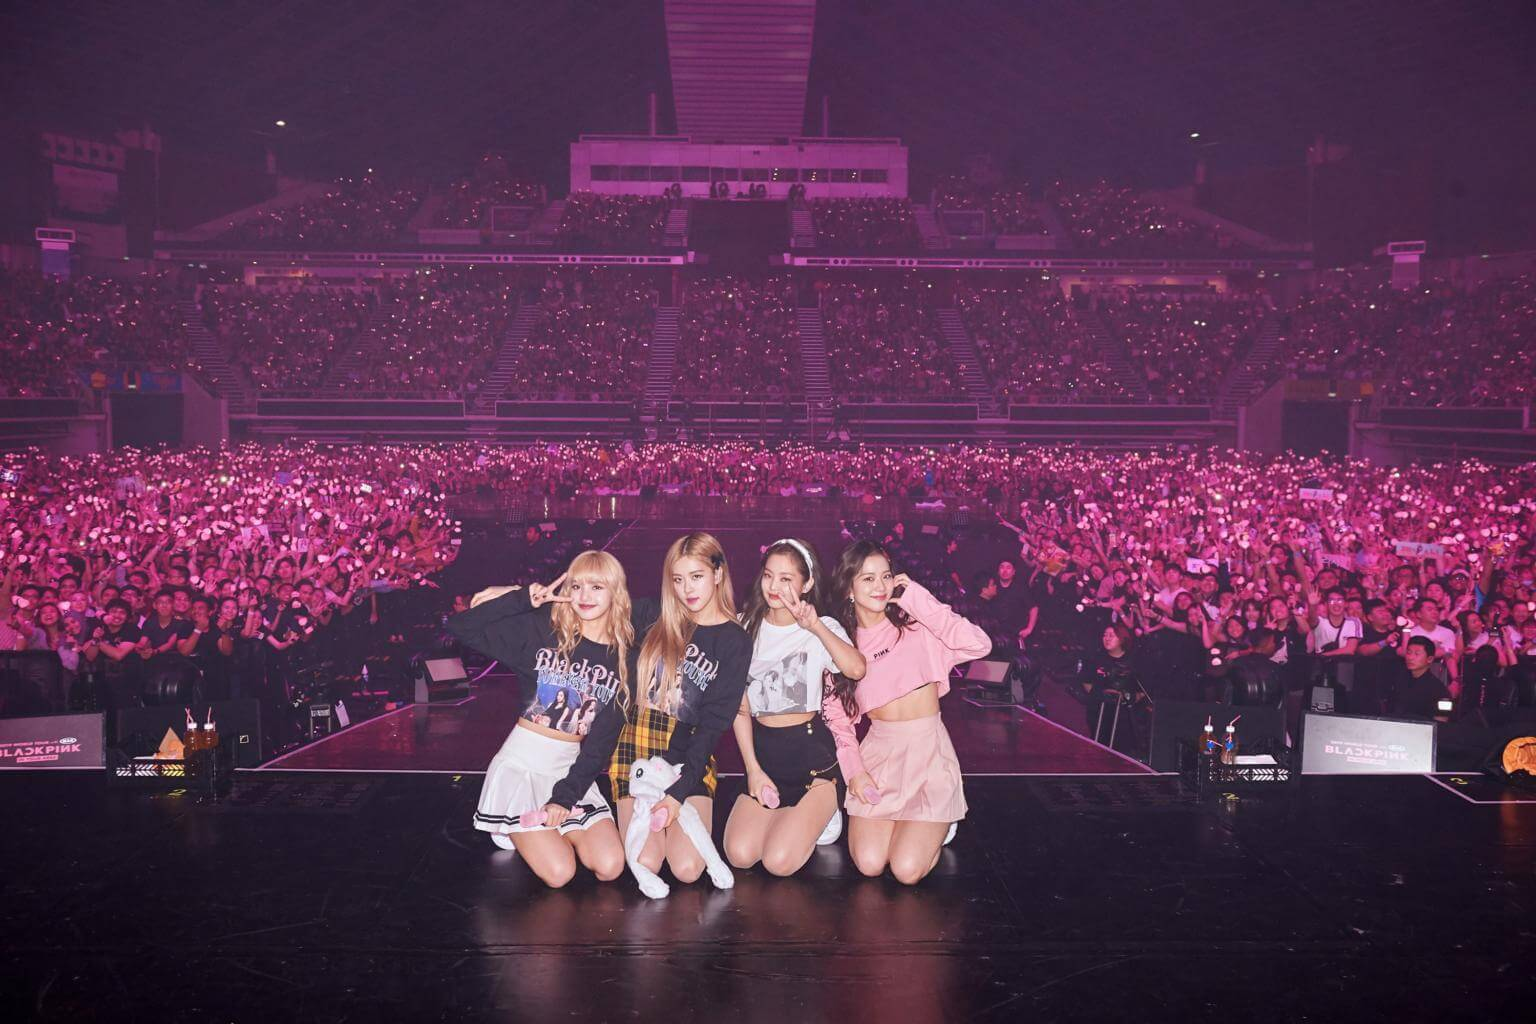 BLACKPINK members pose with fans